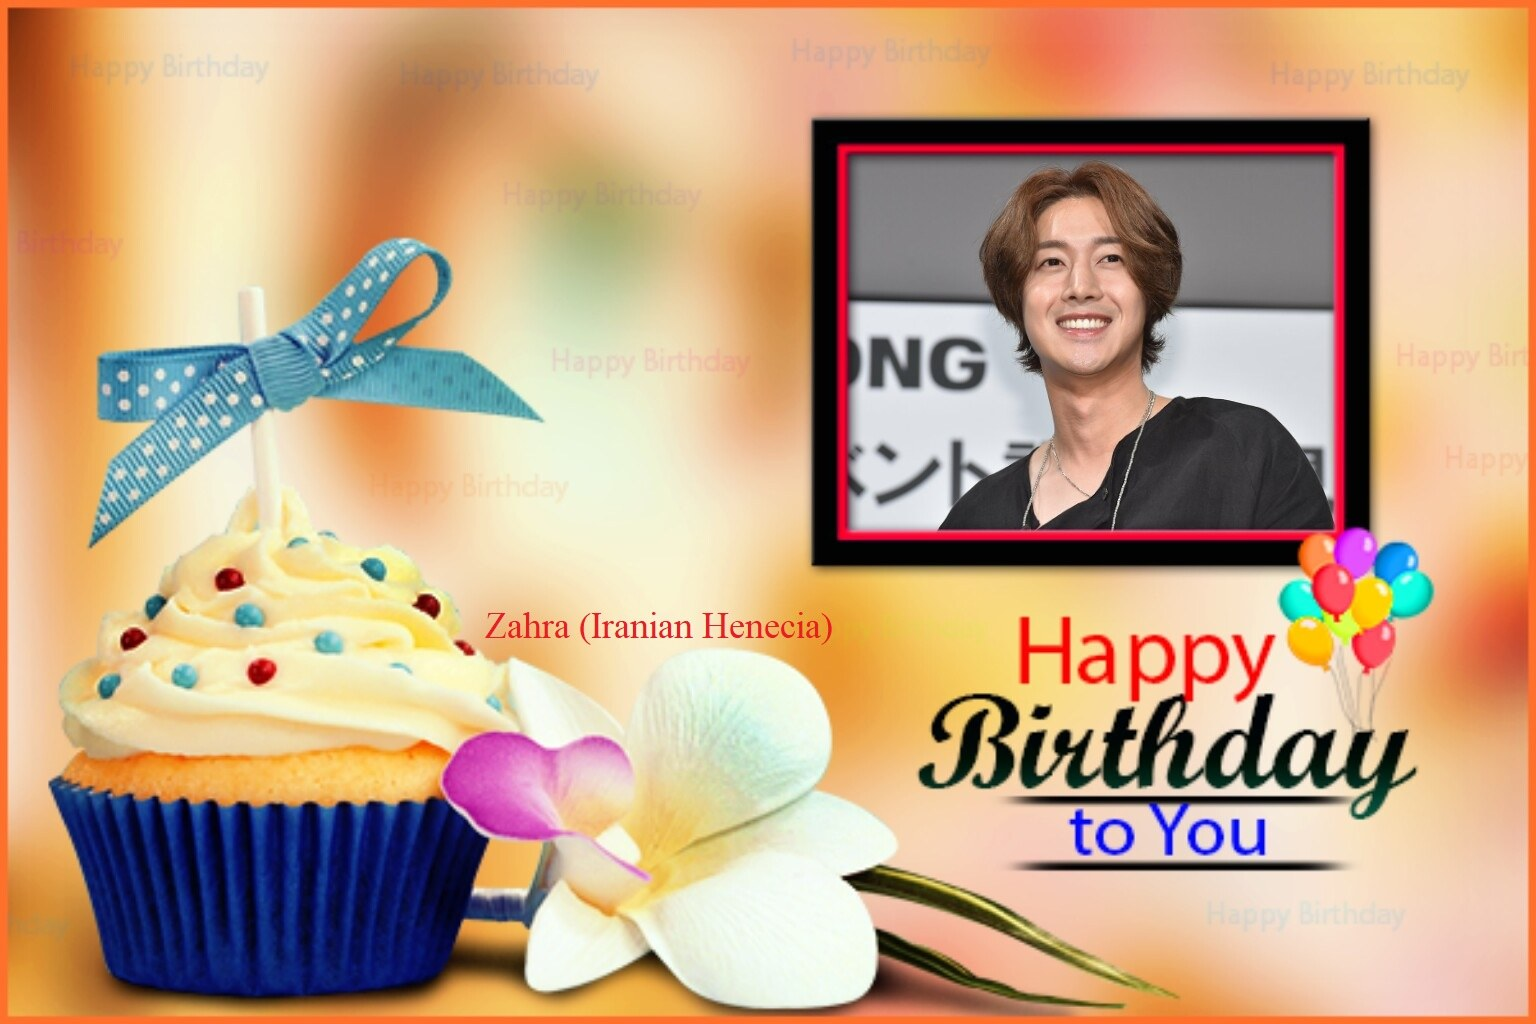 (My Fanart from Happy 32th Birtday of KHJ (2